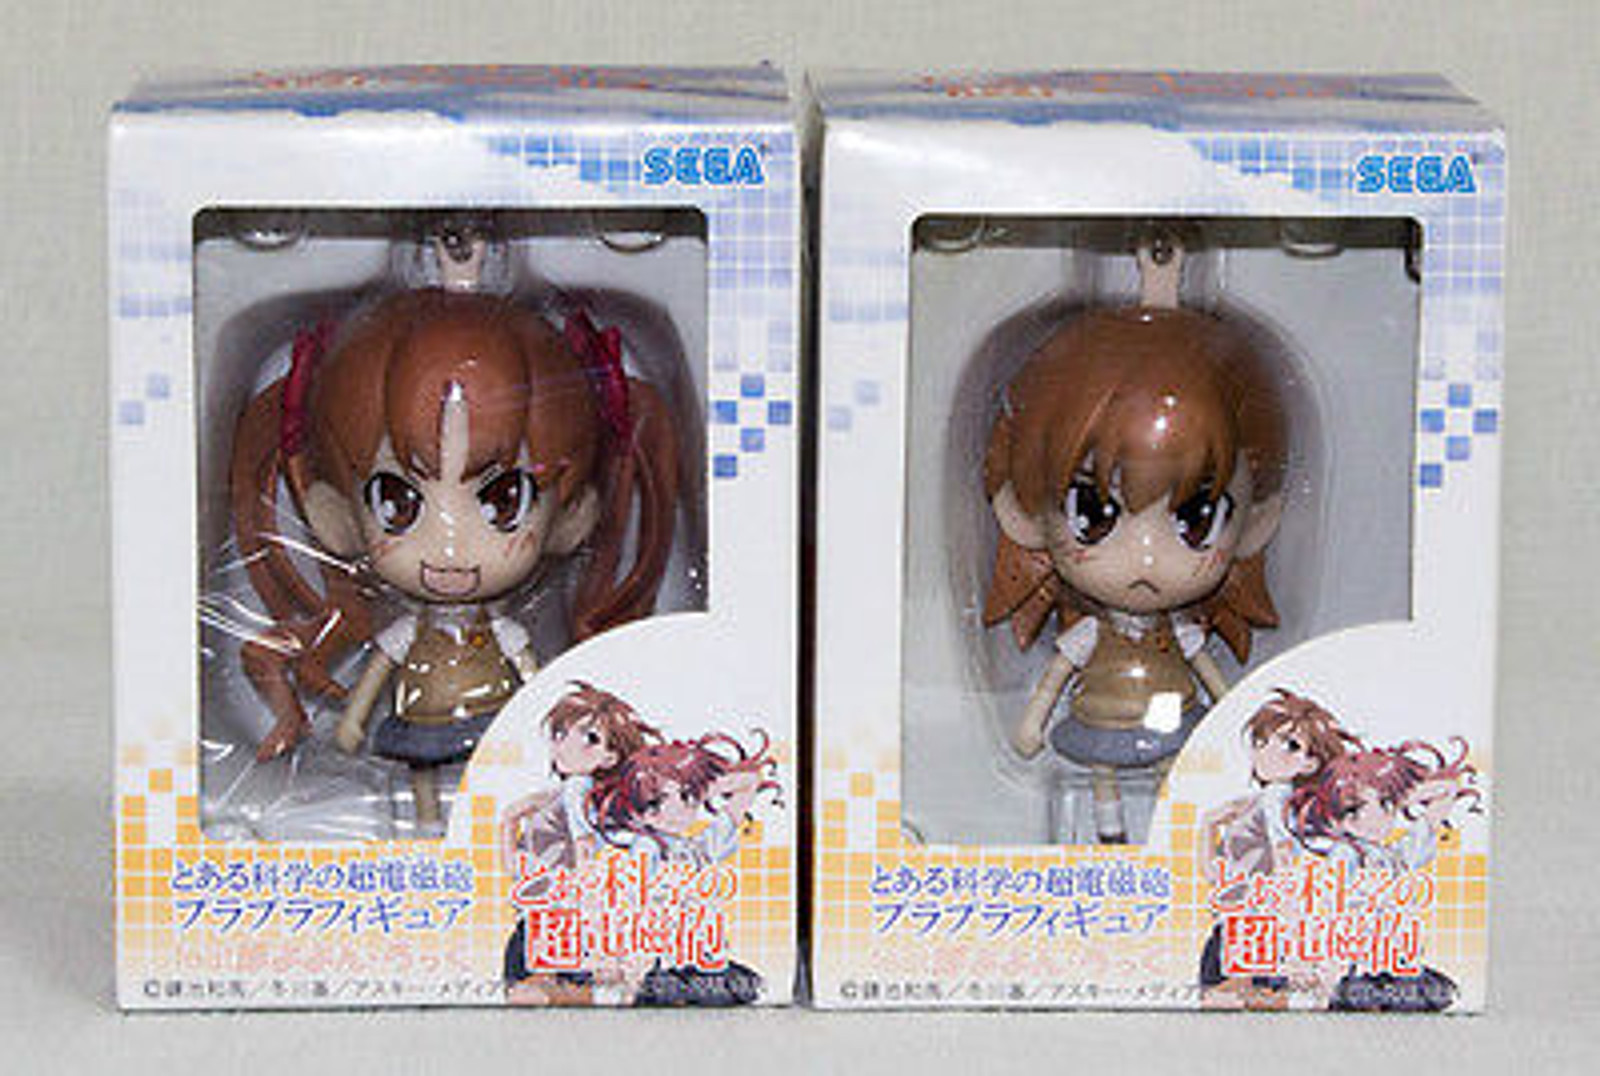 Set Of 2 A Certain Scientific Railgun Mikoto&Kuroko Pura-Pura Figure (To aru Kagaku no Railgun) SEGA JAPAN ANIME